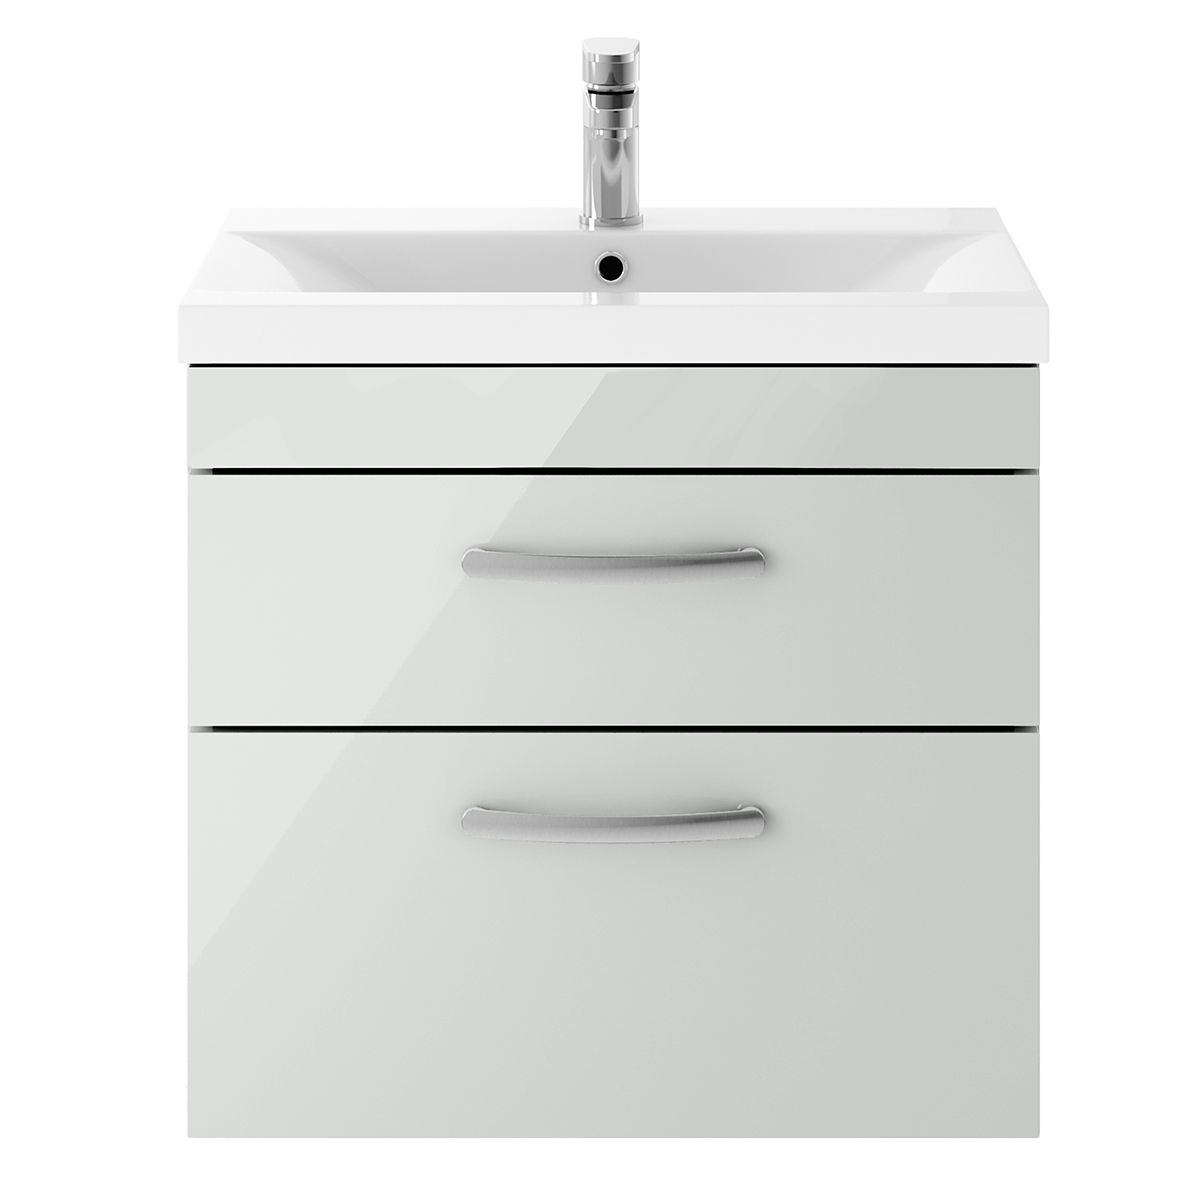 Nuie Athena Gloss Grey Mist 2 Drawer Wall Hung Unit 600mm with Mid Edge Basin